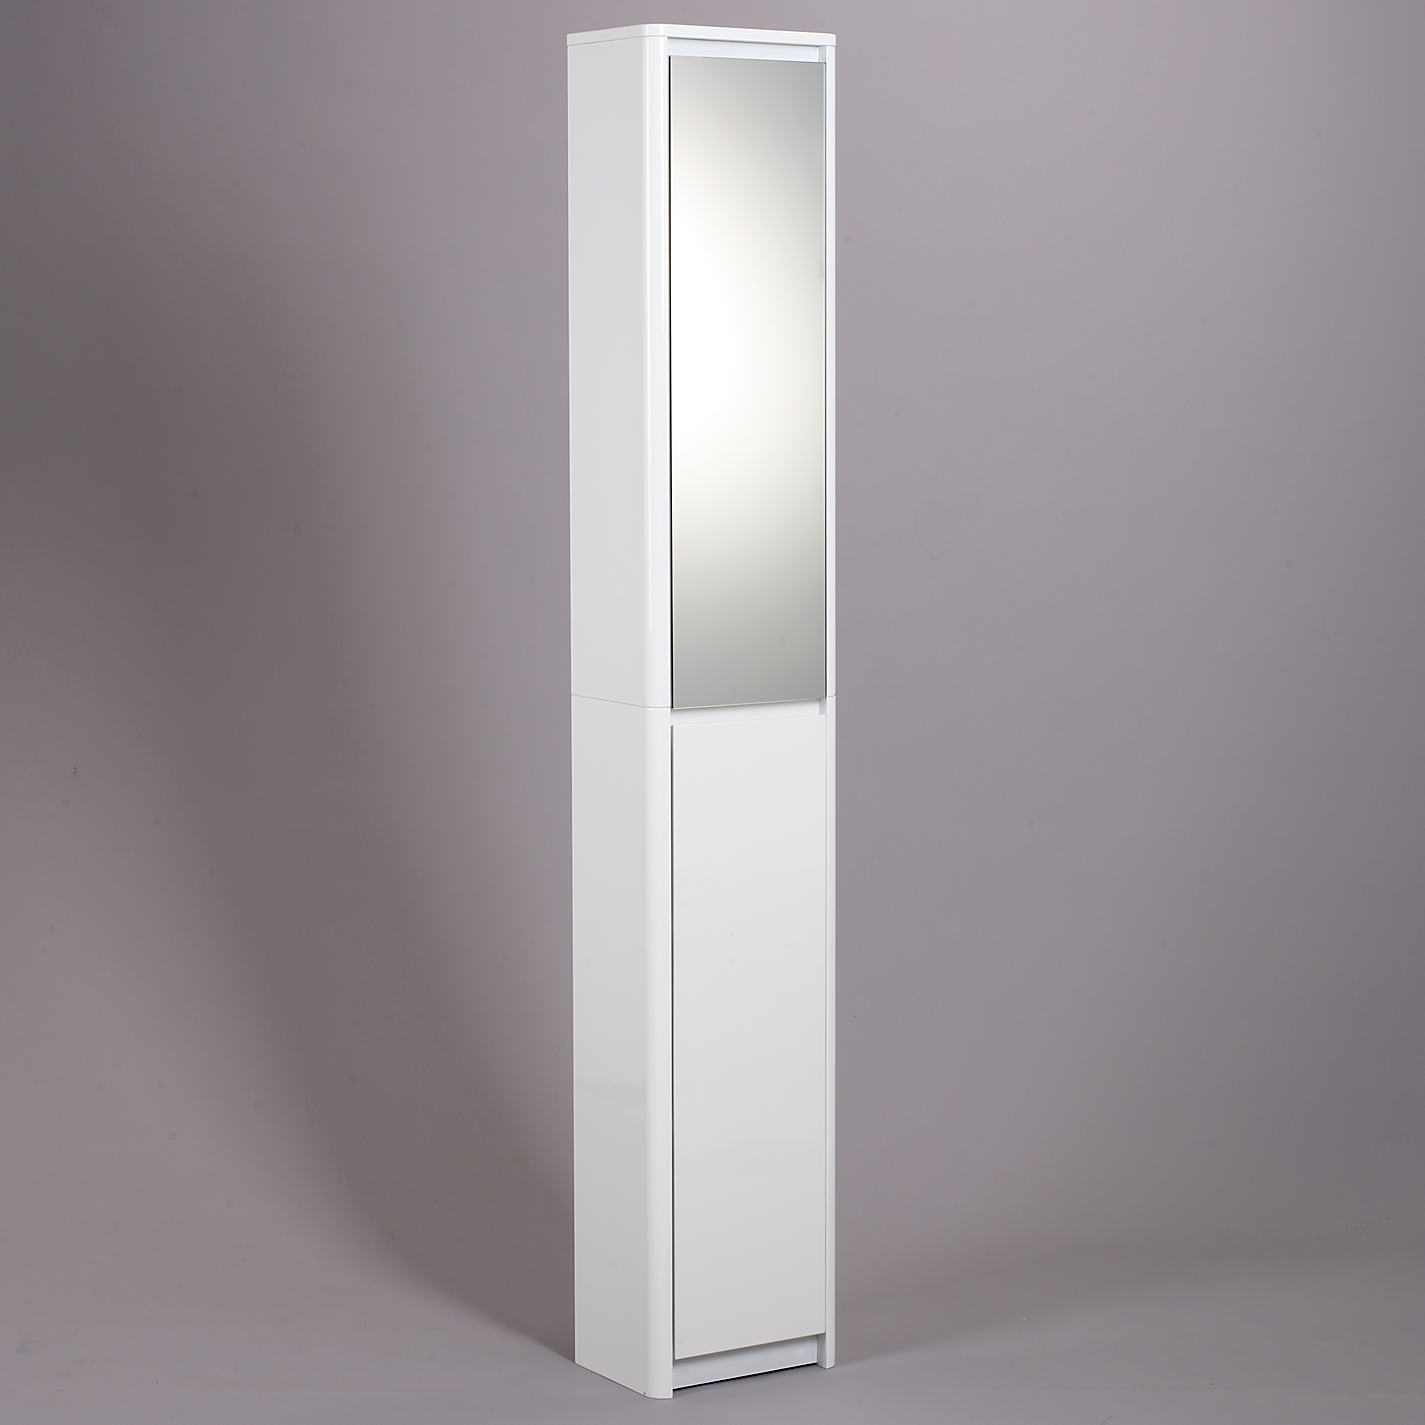 White Gloss Tallboy Bathroom Cabi Susbg Info  Tallboy Bathroom  Cabisbathroom wall cabinets. Narrow Bathroom Tallboy